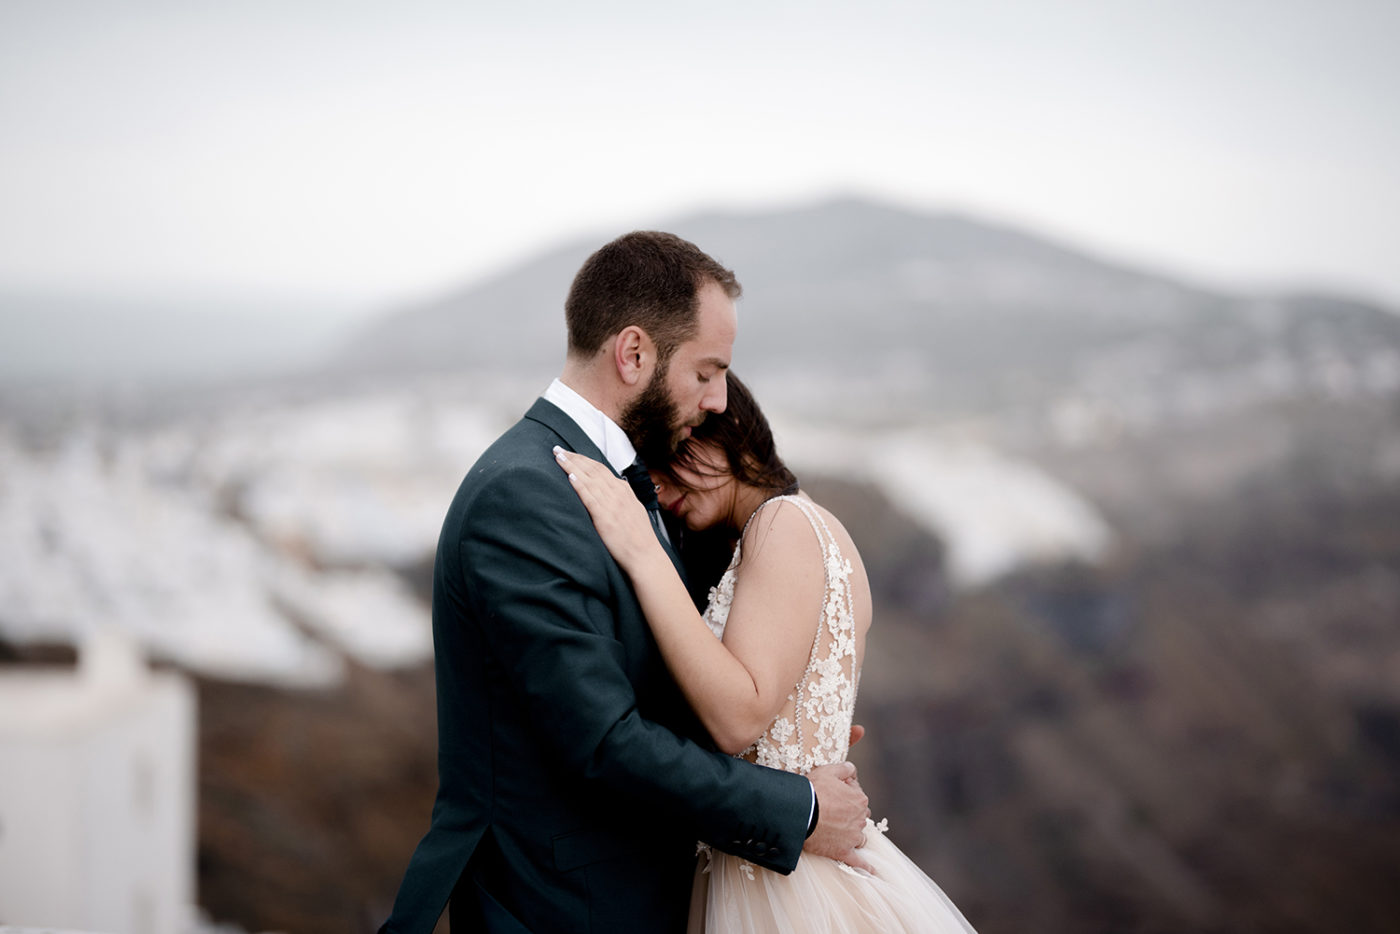 Yiannis-Sissy-Santorini-Wedding-Photography-by-Kirill-Samarits (32)